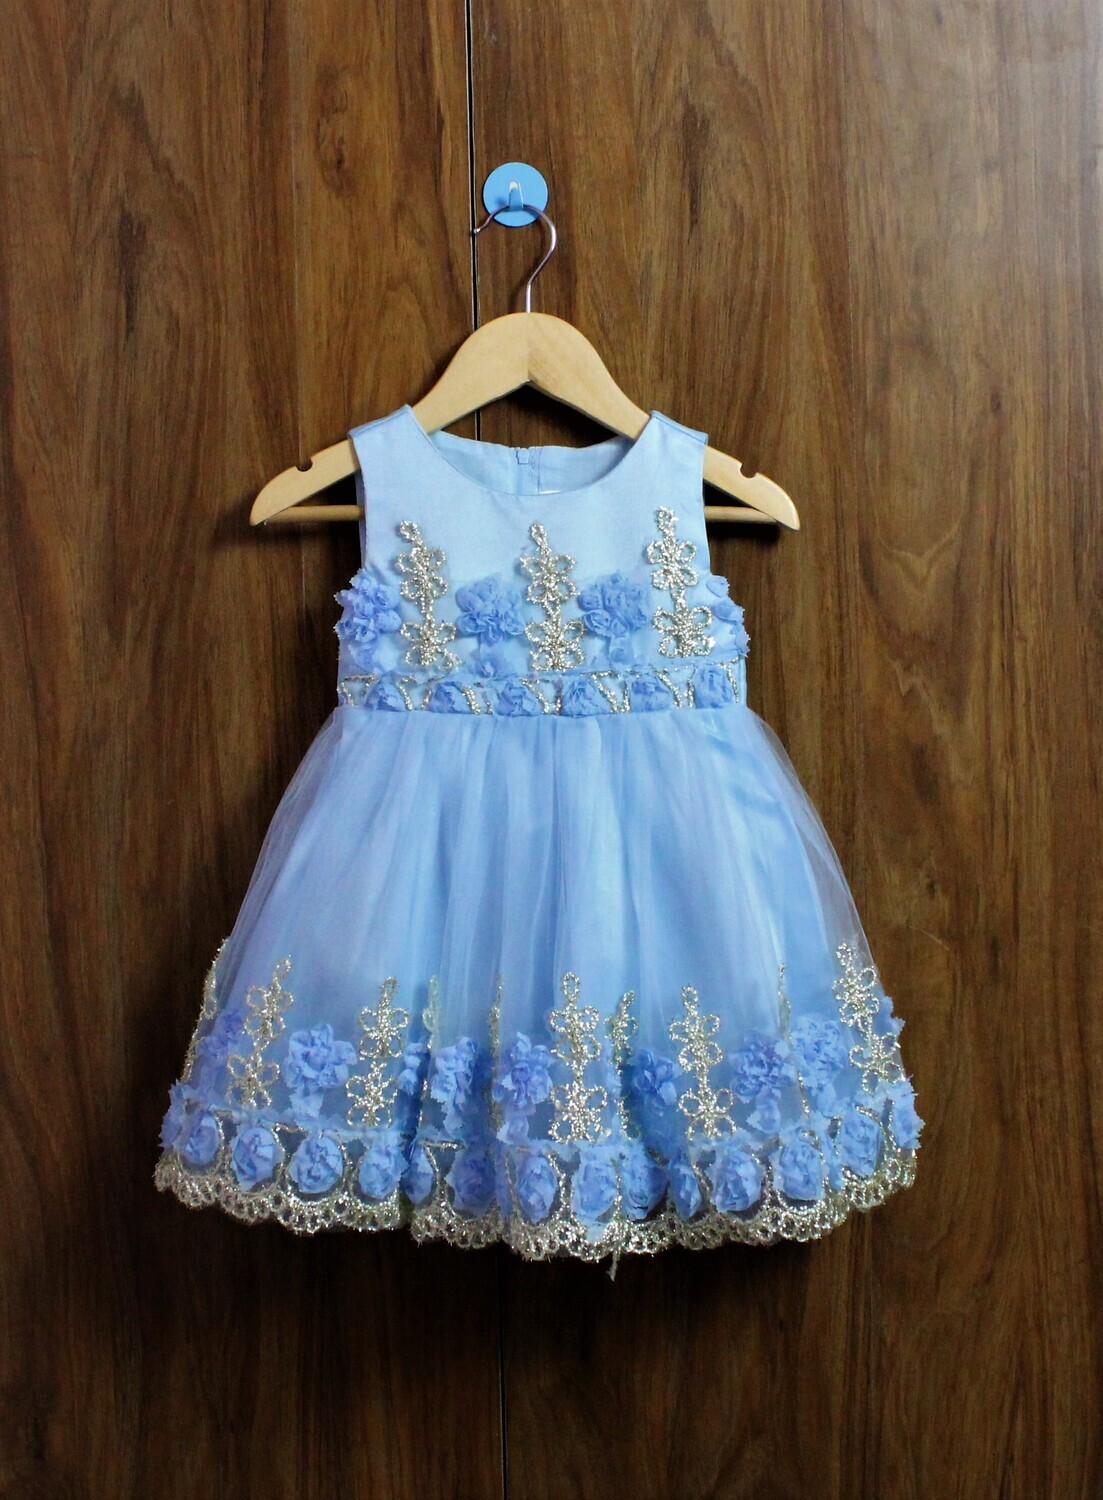 Grand party dress with extra comfort(1 to 3 Yrs.)